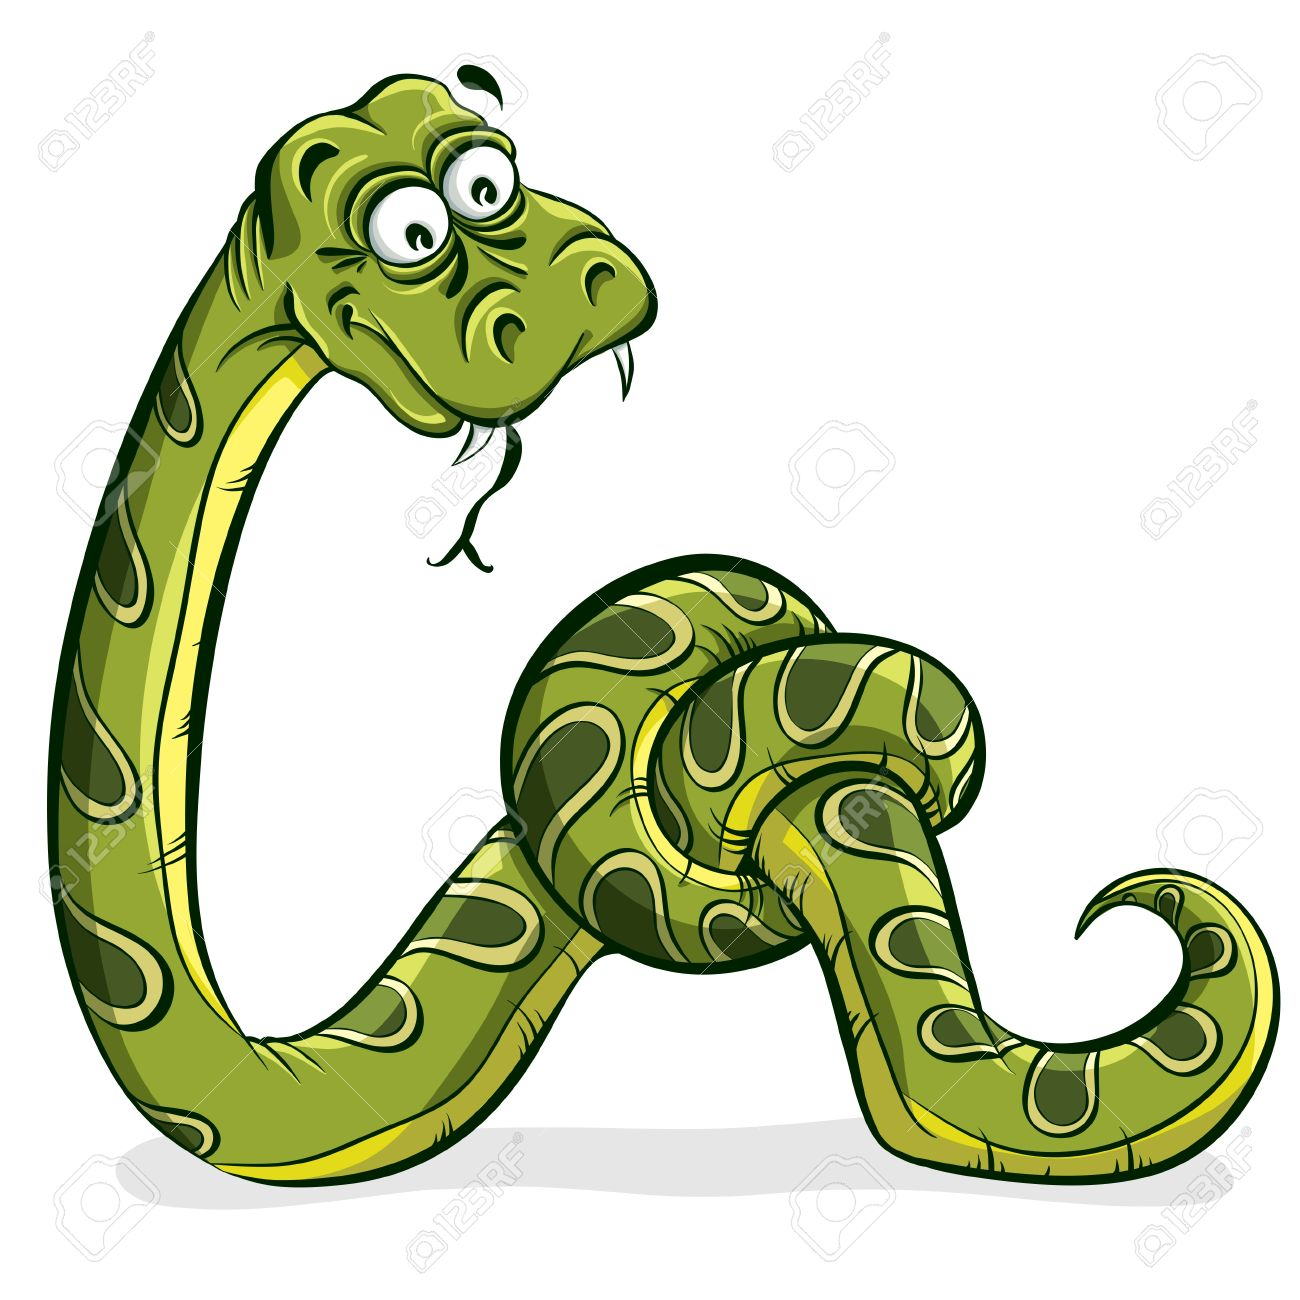 Green snake cartoon tied up in a knot Stock Vector - 15275236